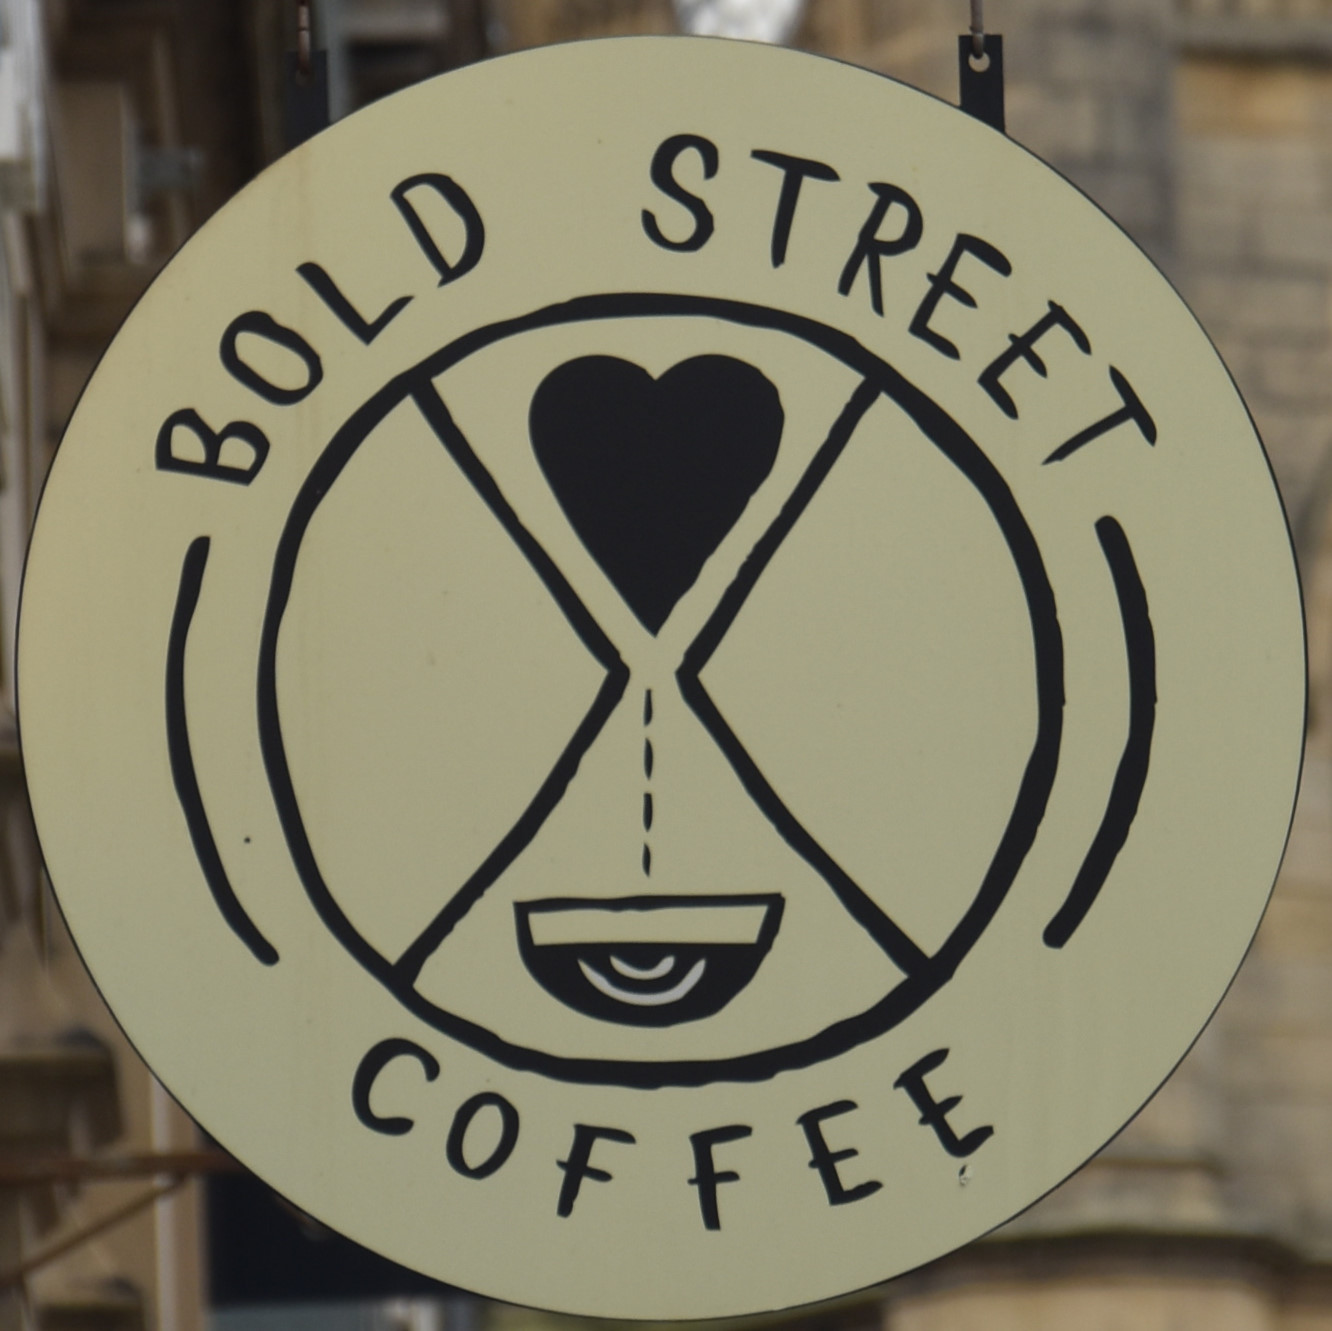 The Bold Street Coffee sign, back outside the shop on Bold Street, Liverpool.